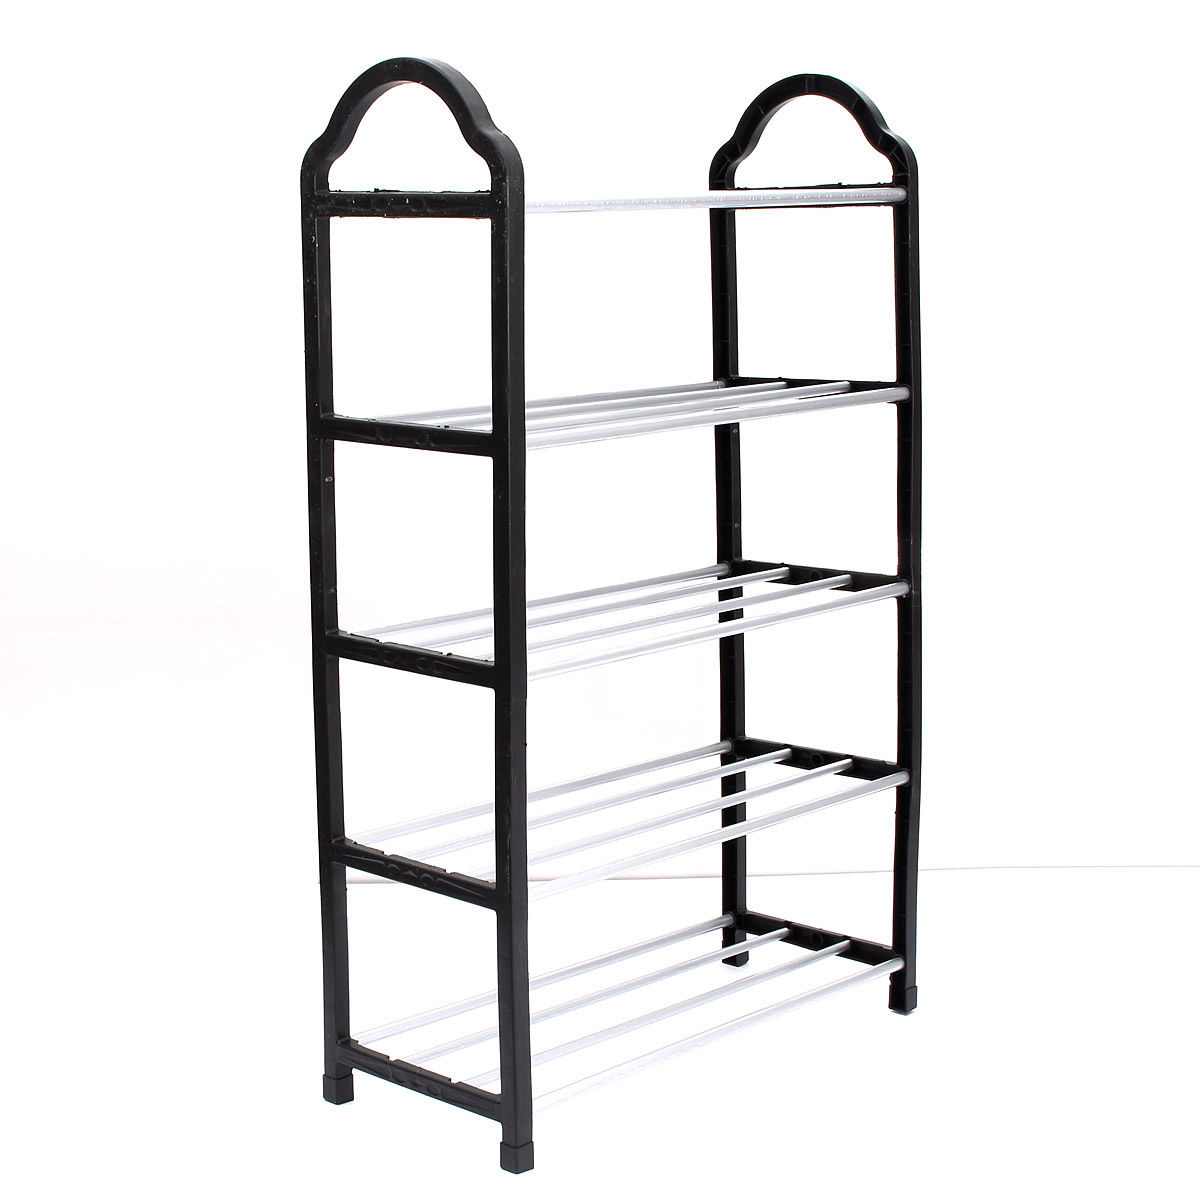 5 Tier Home Storage Organizer Cabinet Shelf Space Saving Shoe Tower Rack Stand Black ...